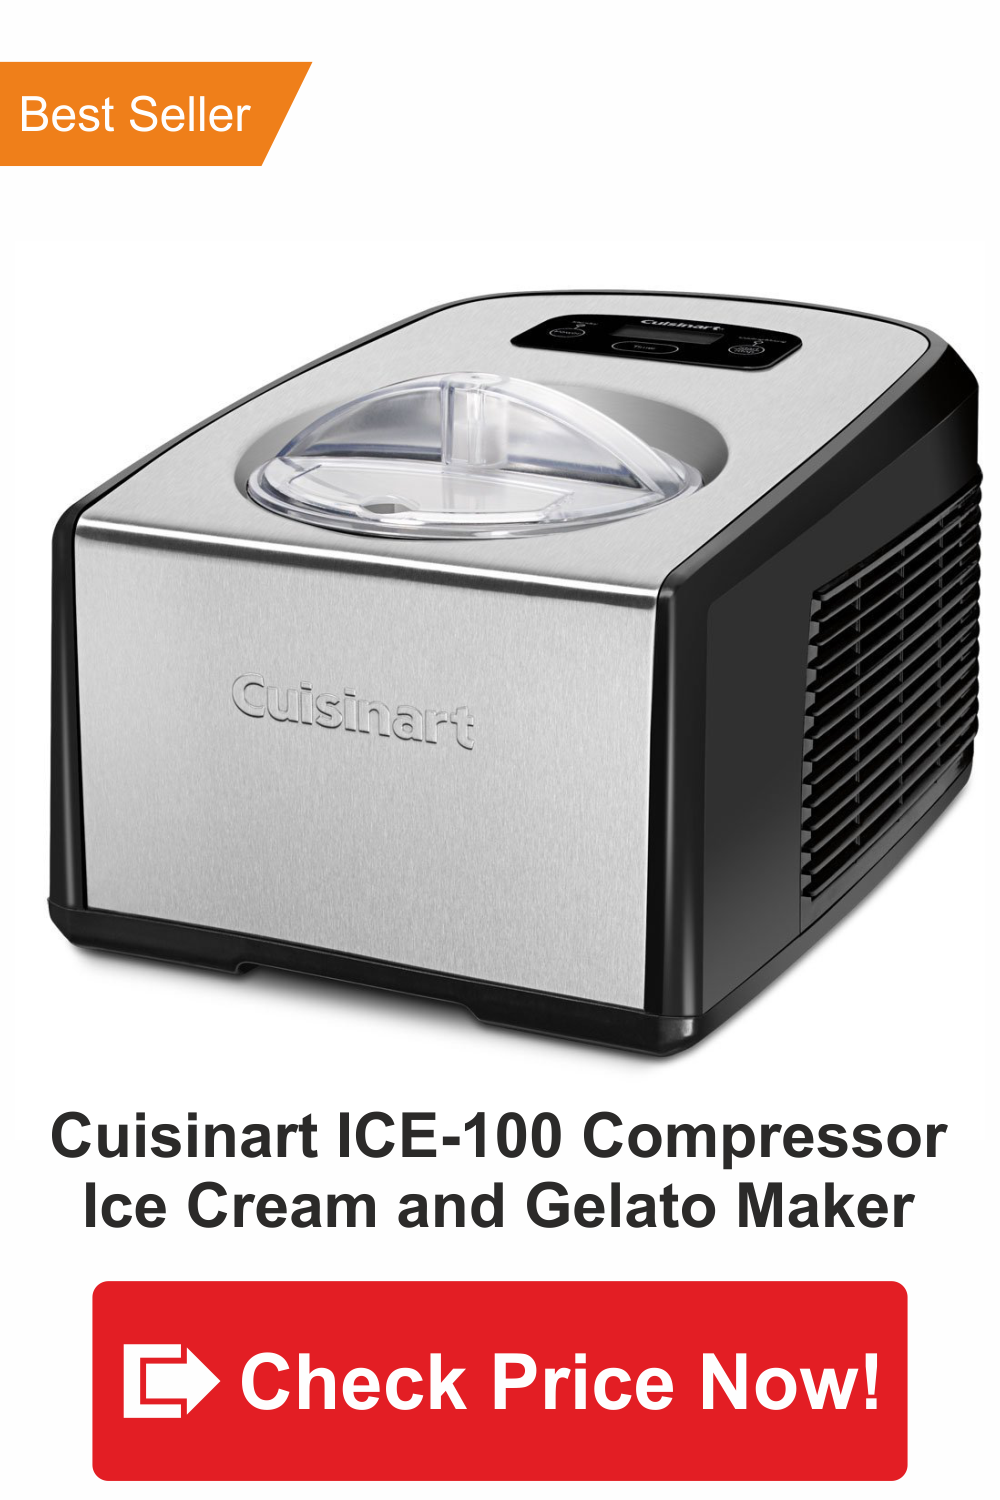 best gelato maker-Cuisinart ICE-100 Compressor Ice Cream and Gelato Maker